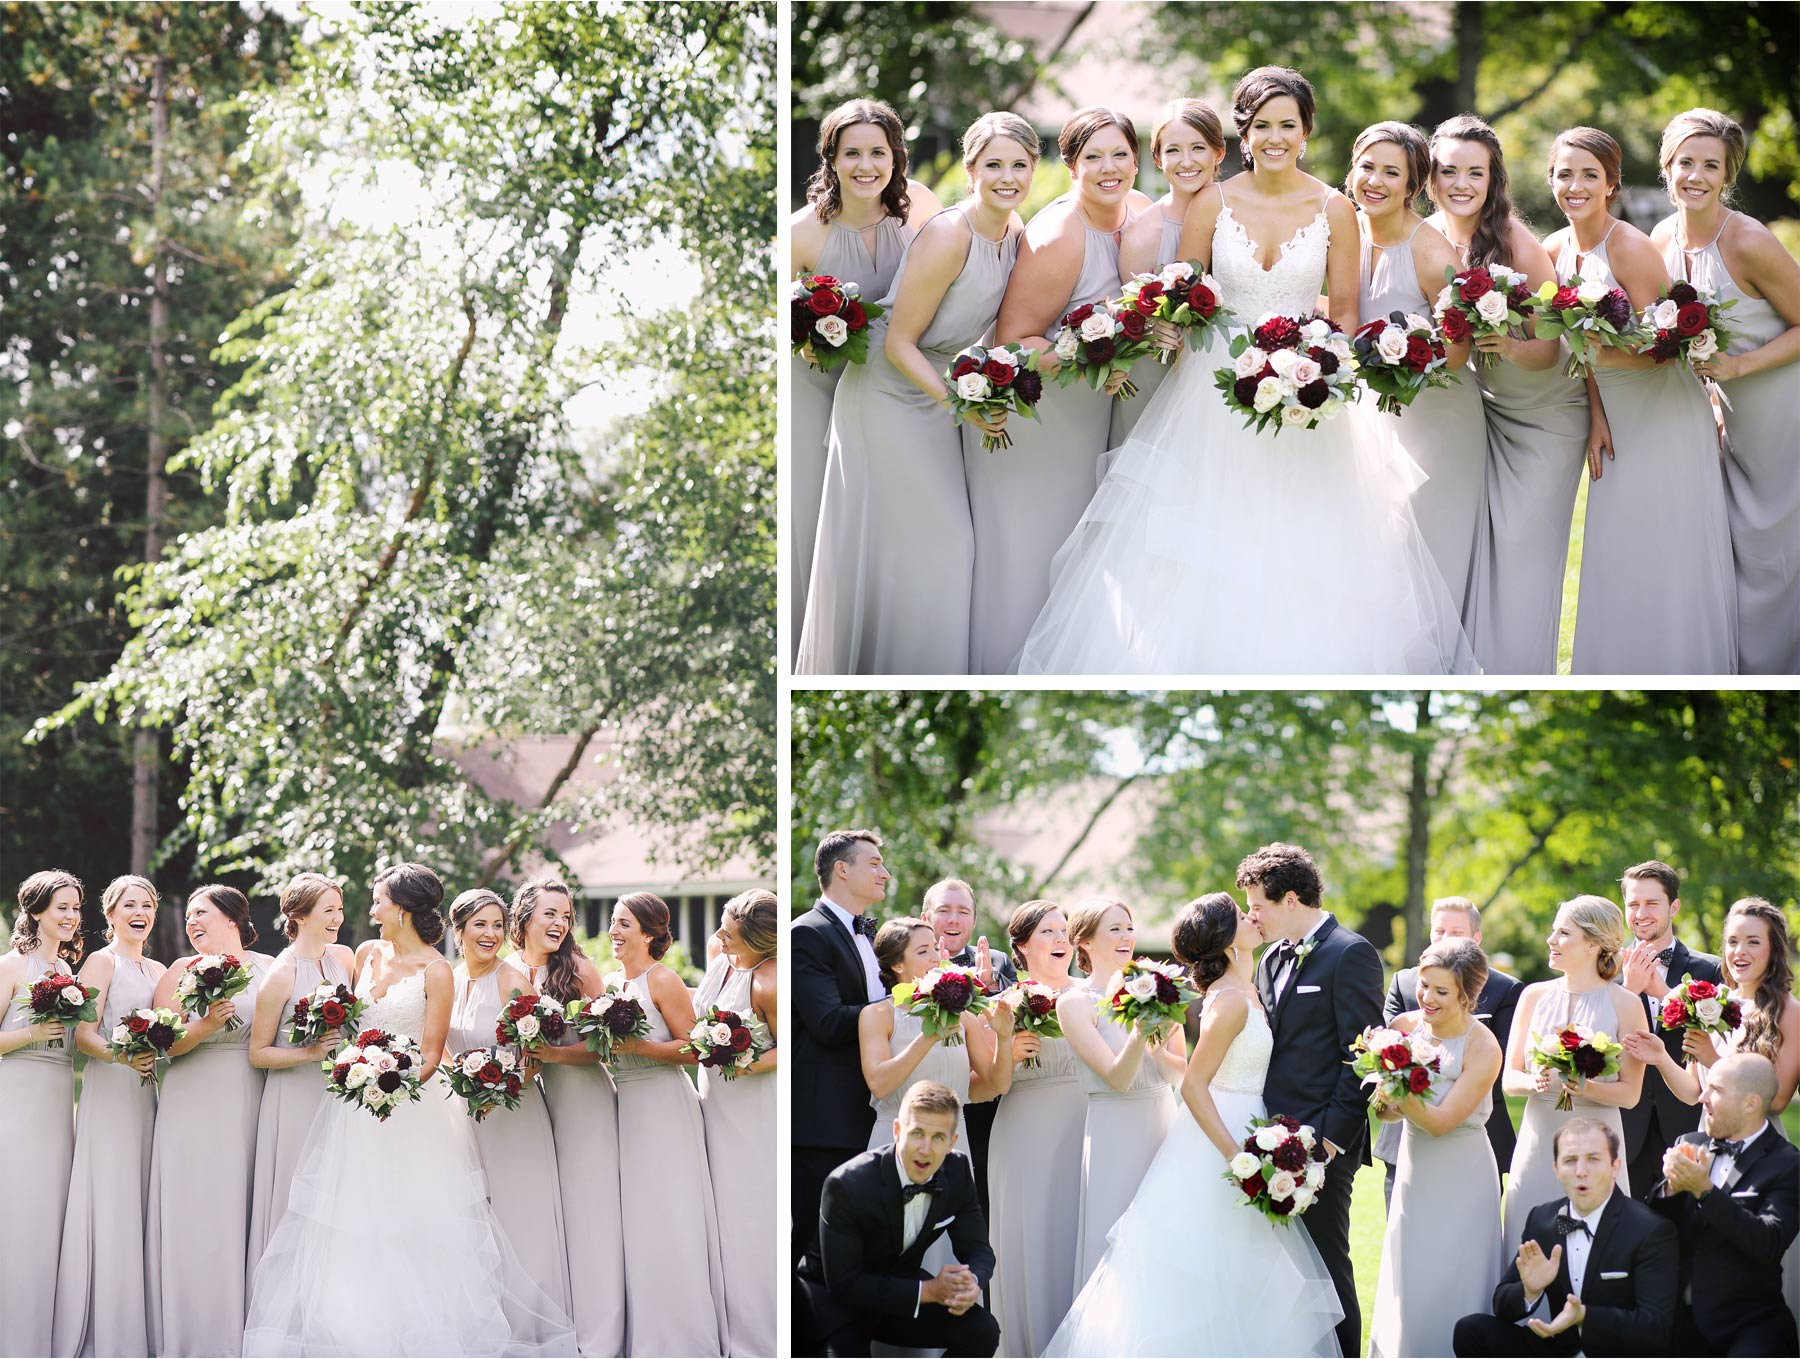 09-Brainerd-Minnesota-Wedding-Photography-by-Vick-Photography-Grand-View-Lodge-Woods-Wedding-Party-Groups-Bethany-and-Anthony.jpg